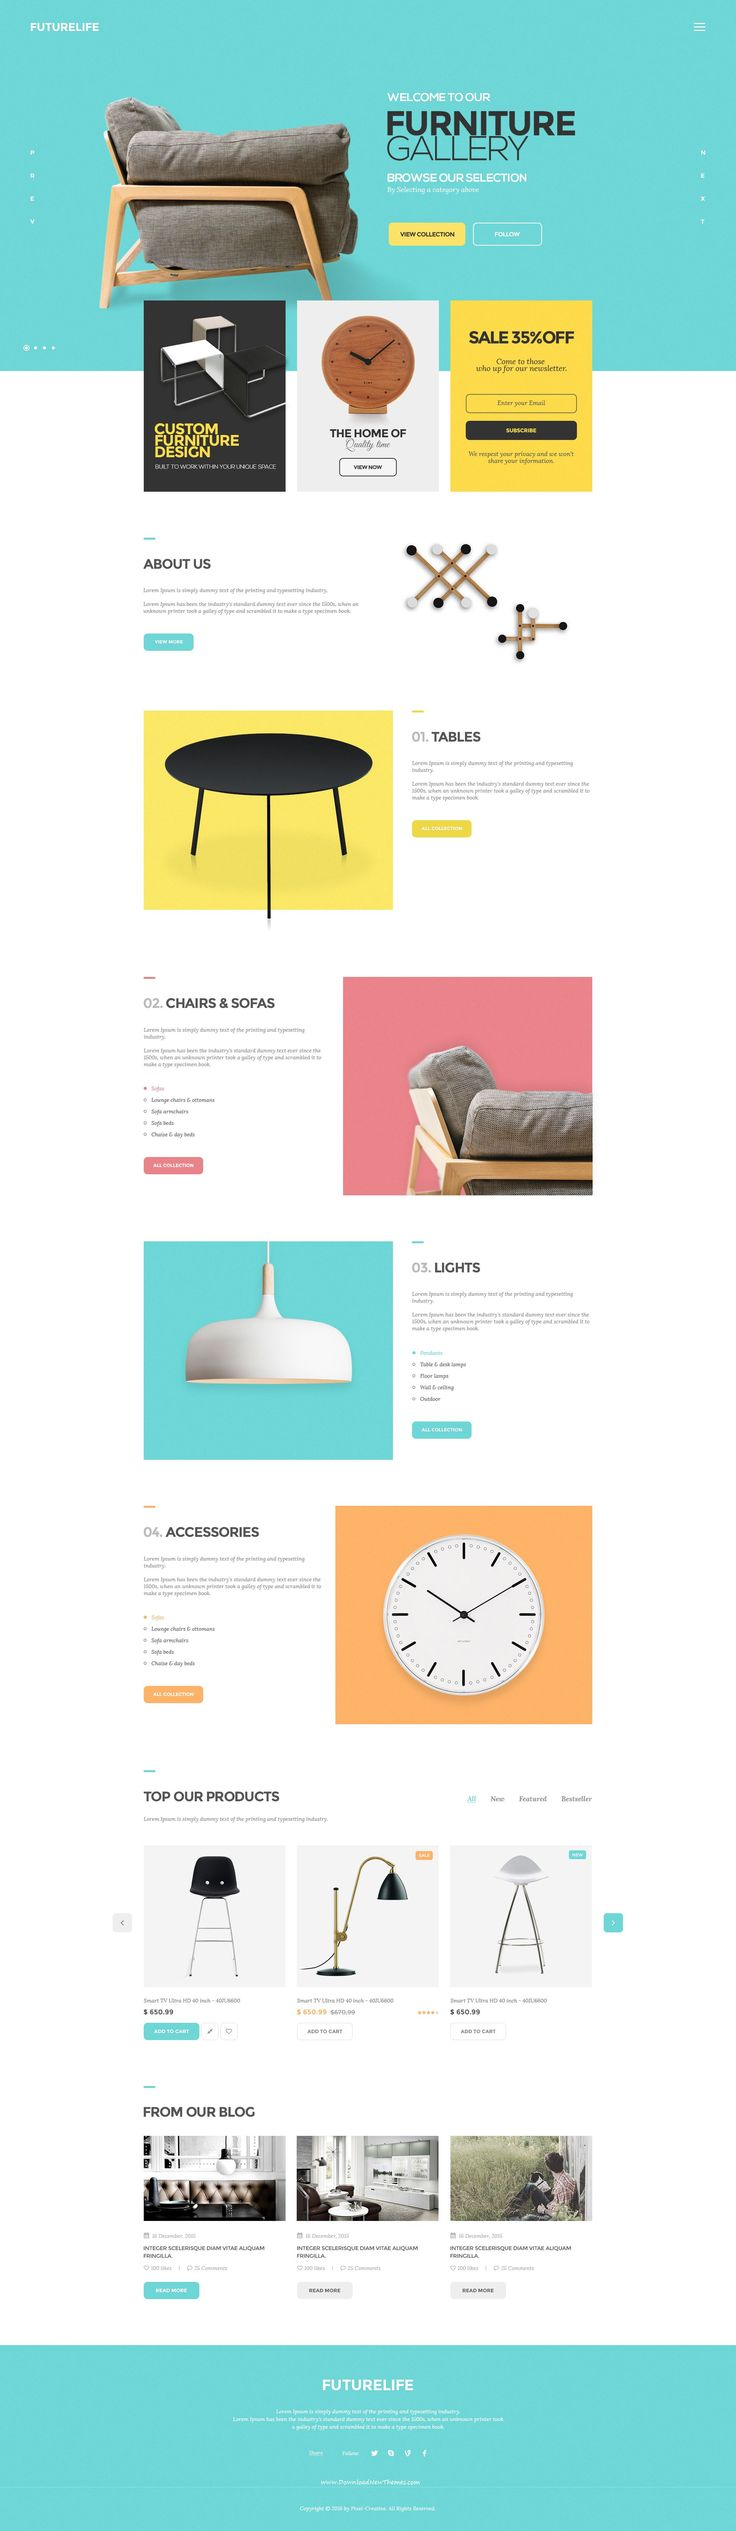 Futurelife – Ecommerce PSD Template is a uniquely eCommerce website template designed in #Photoshop with a modern look. Perfect for furniture or #interior shop.